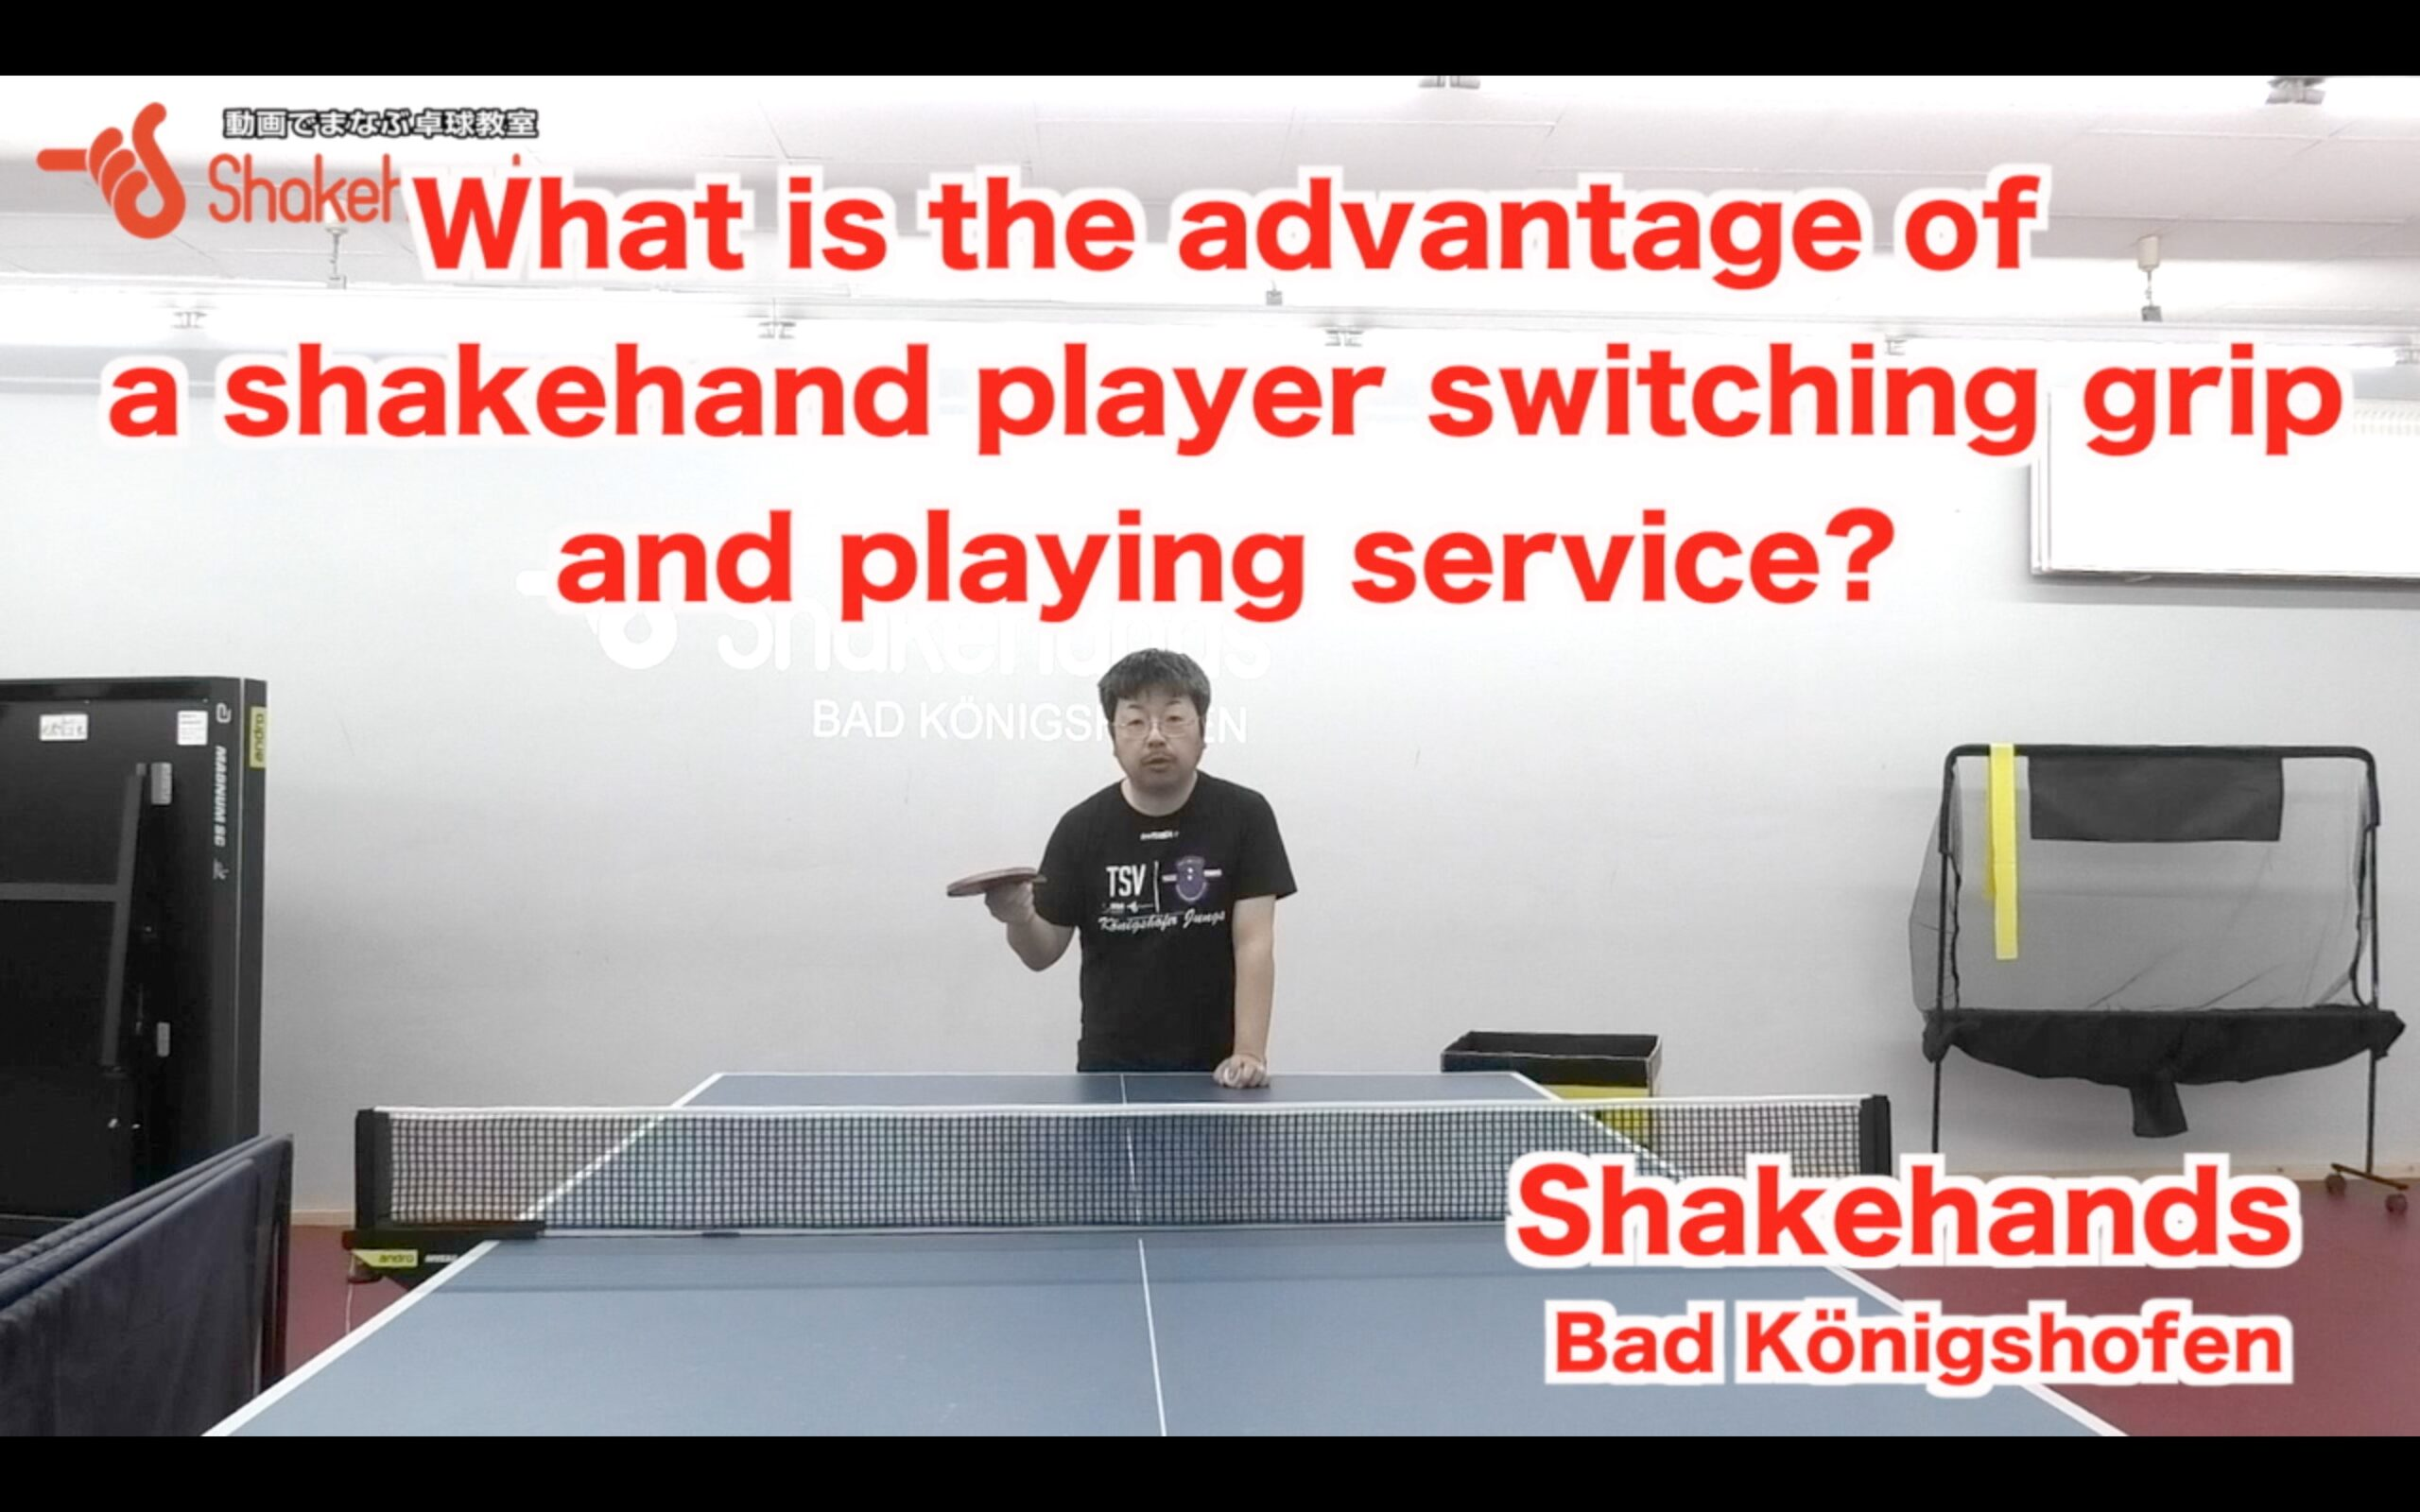 What is the advantage of a shakehand player switching grip and playing service?